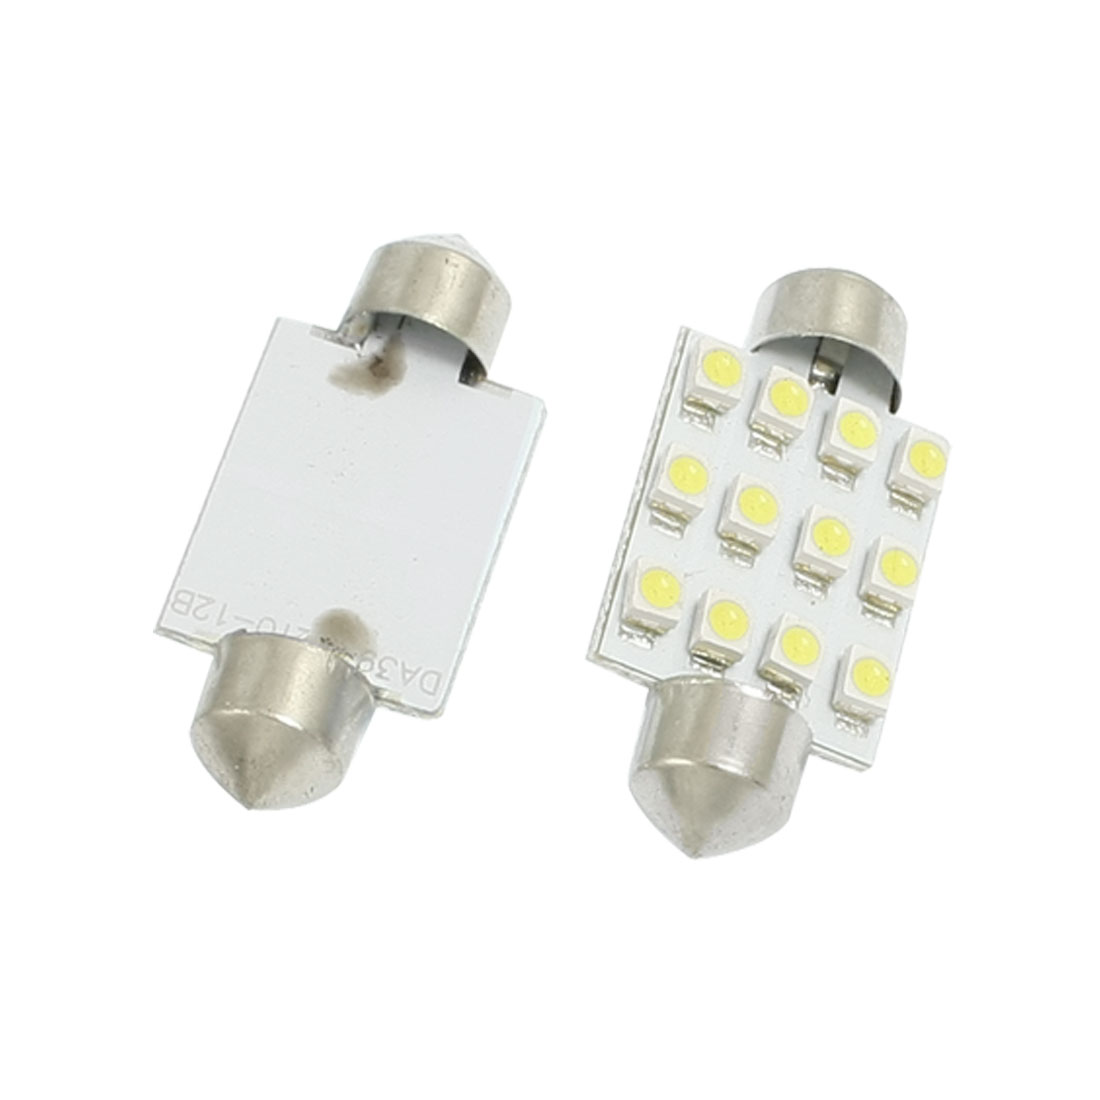 2 Pcs Car DC 12V 1210 3528 White 12 SMD Dome Festoon LED Light Lamp Bulb 39mm